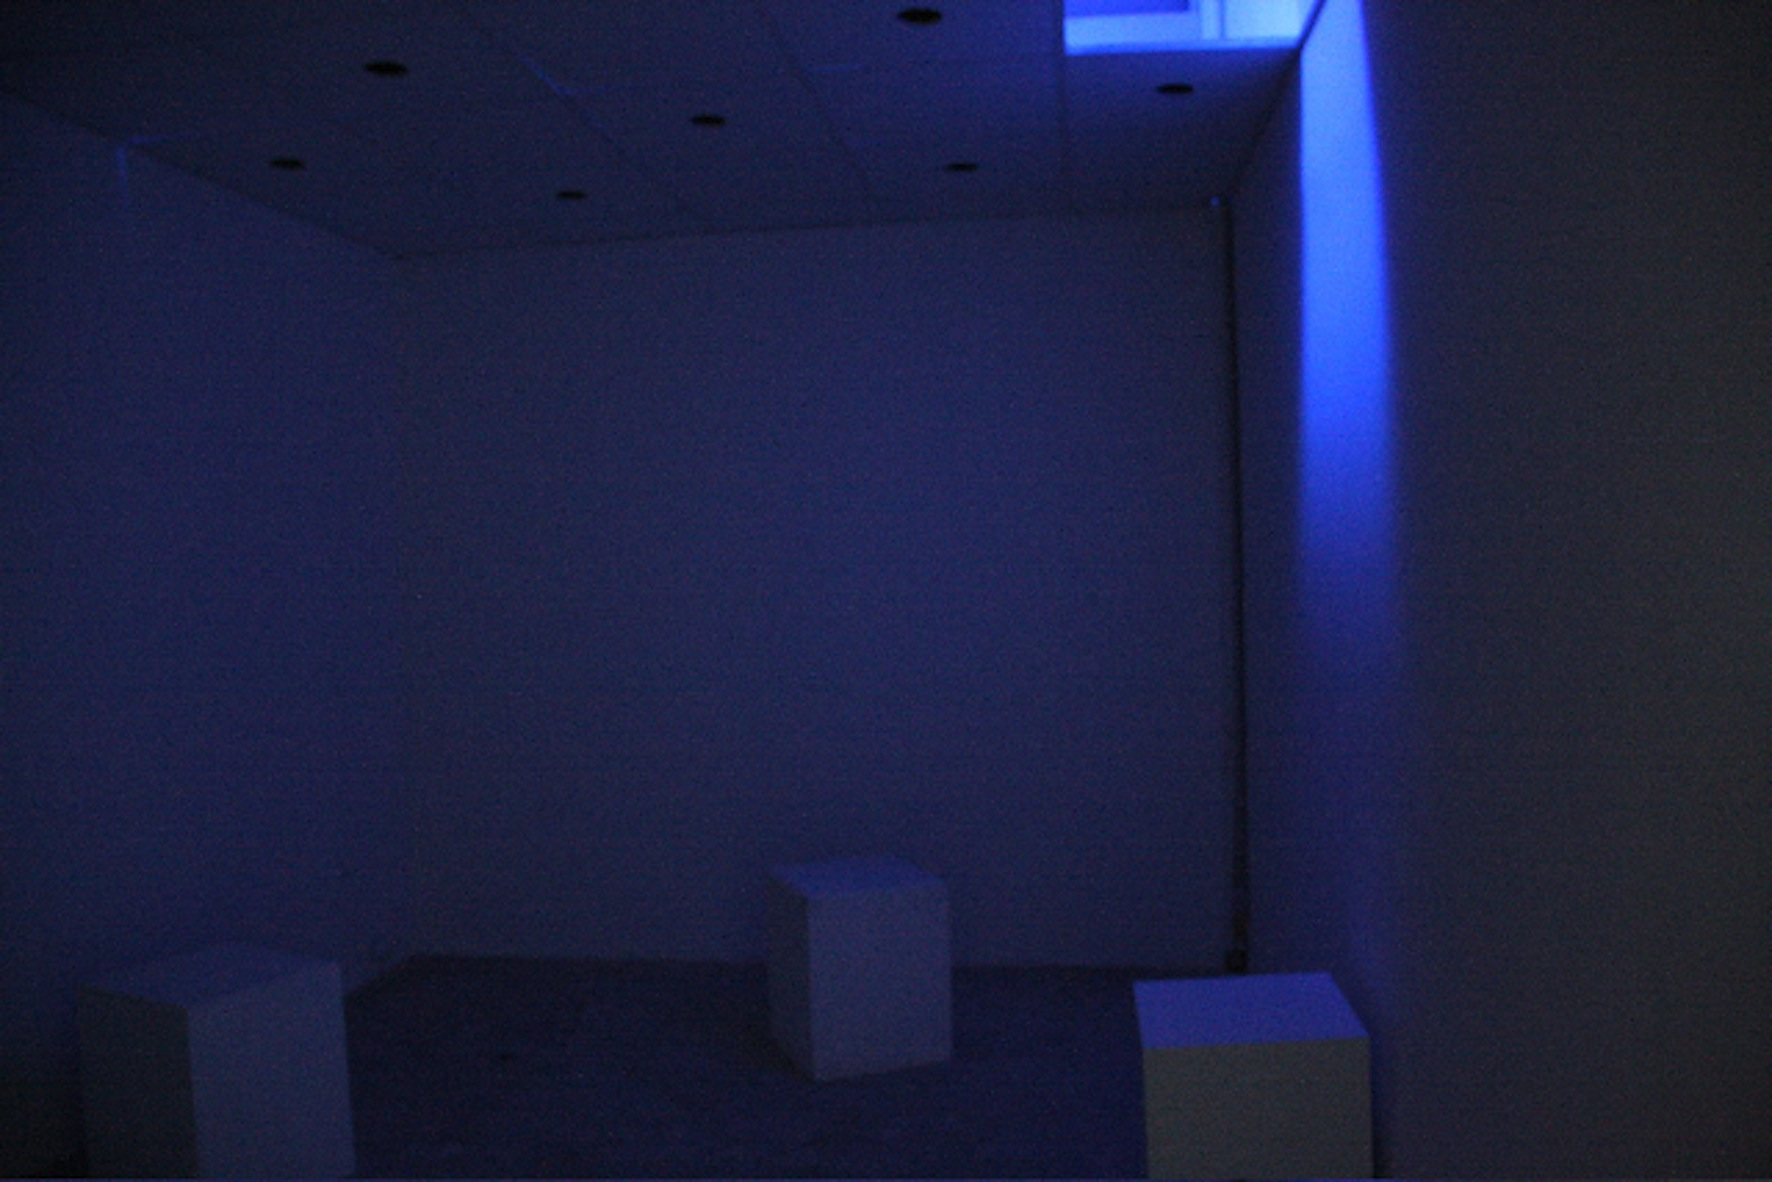 Installation view, Beirut Art Center: the 8 channels are spread over 16 speakers embedded in the low ceiling of a confined space. The sound is spatialized and the visitor would enter as if stepping inside a sound box.